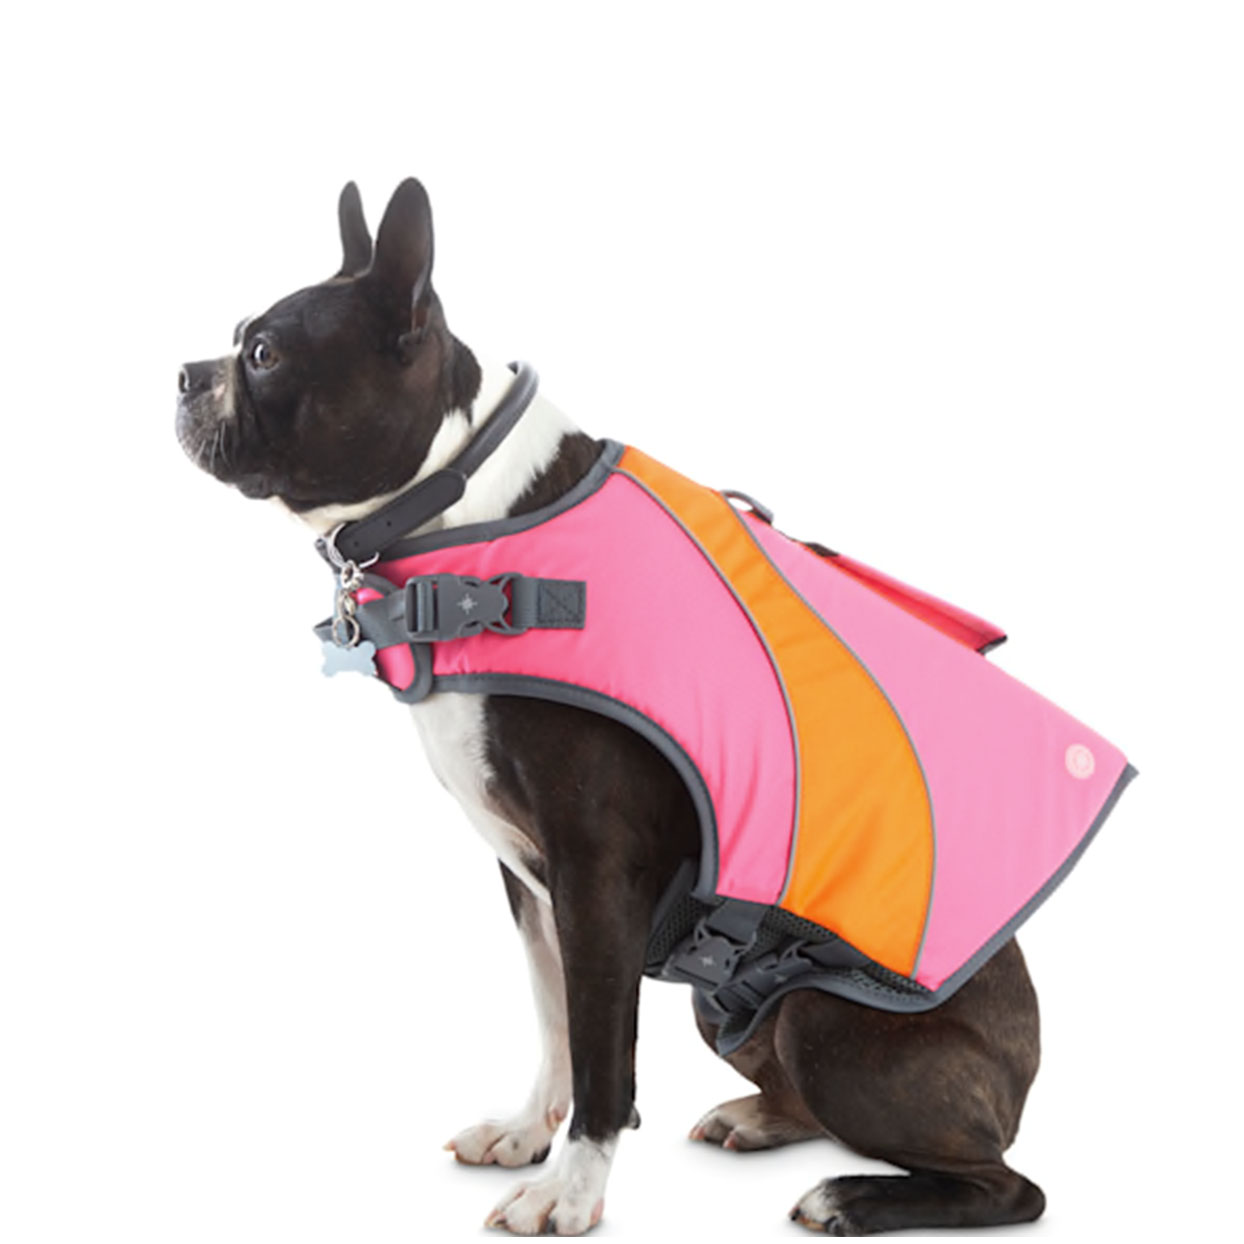 YOULY dog flotation vest